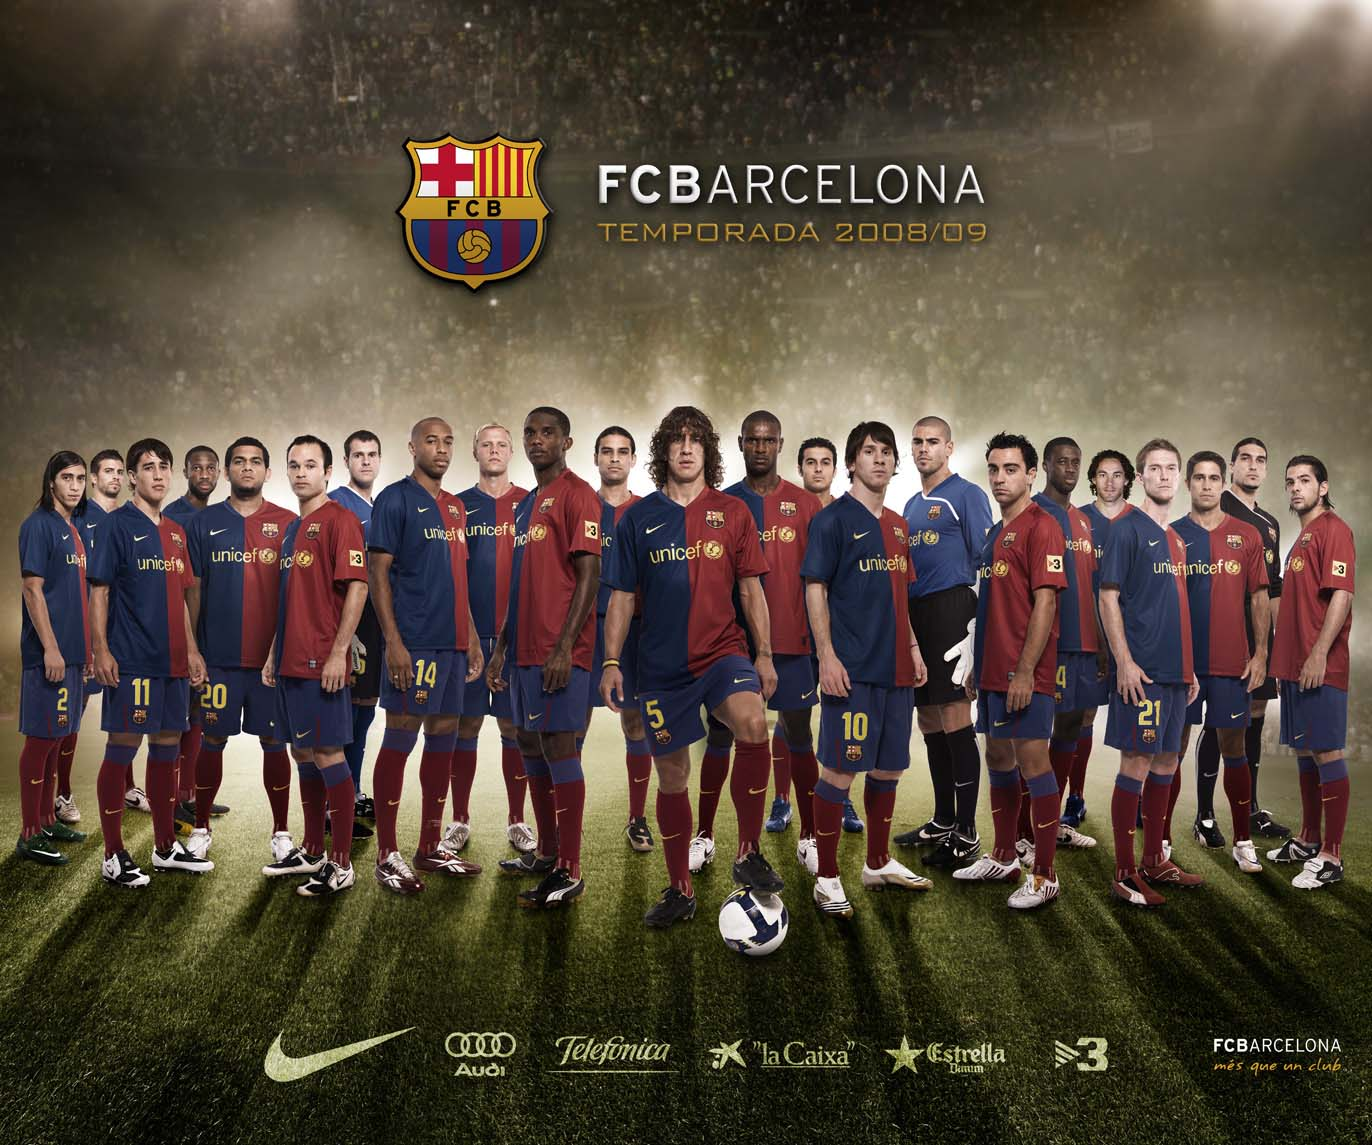 Official FC Barcelona Web Site - Bara m